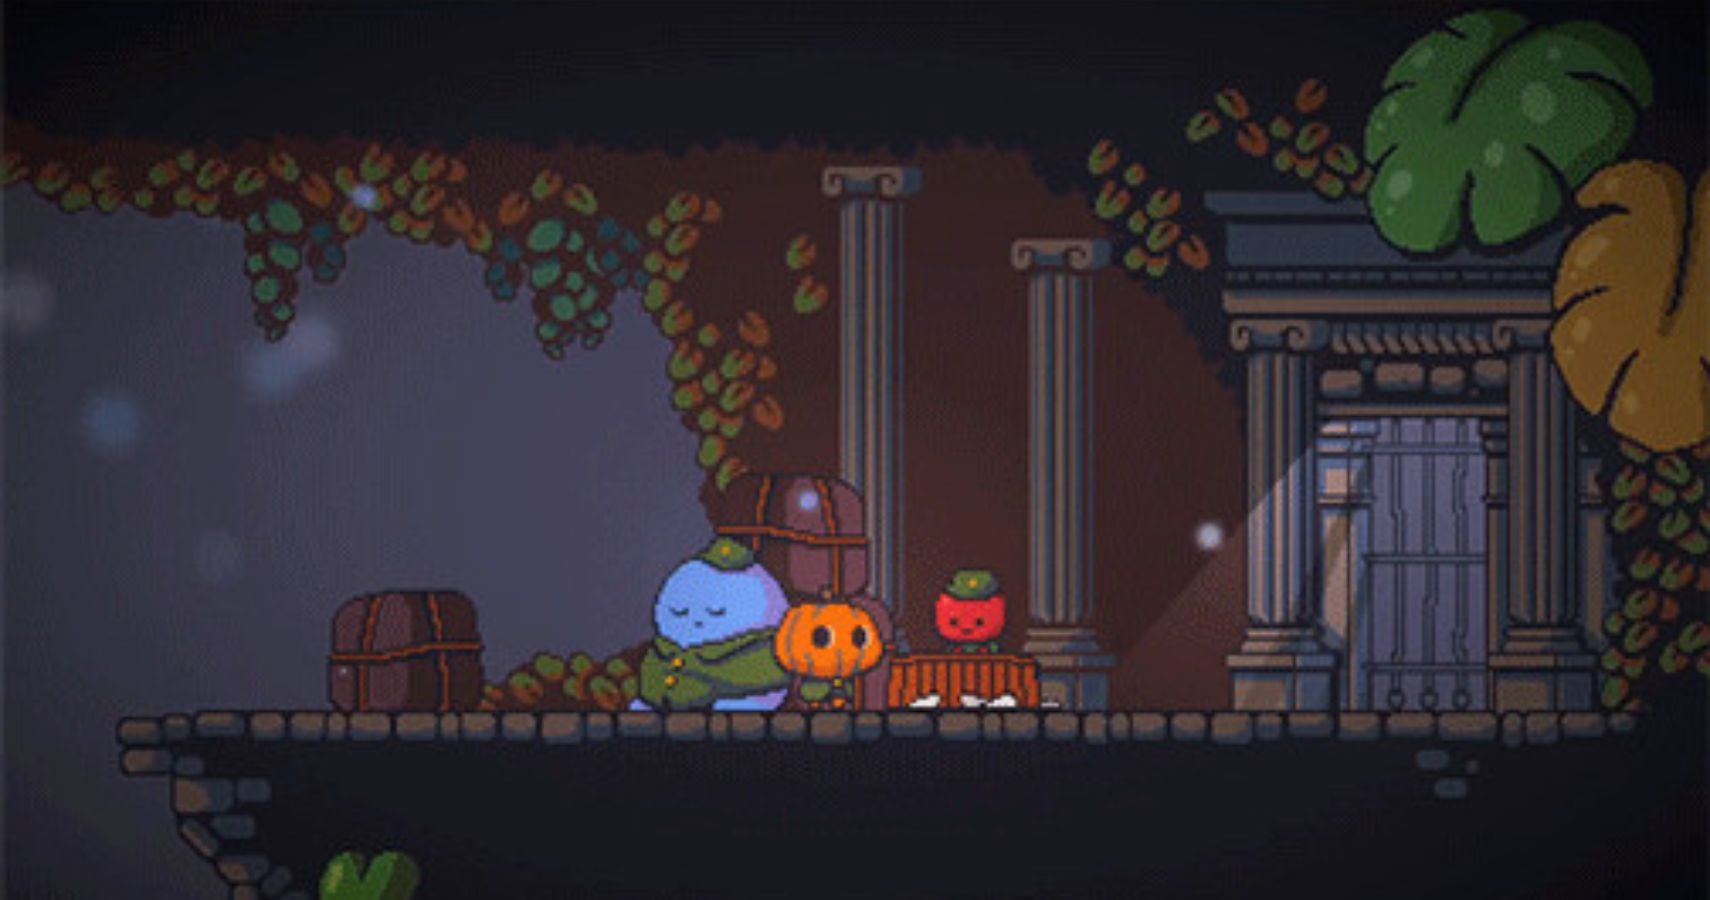 The Tale Of The Cartographer Has The Cutest Pumpkin-Headed Protagonist